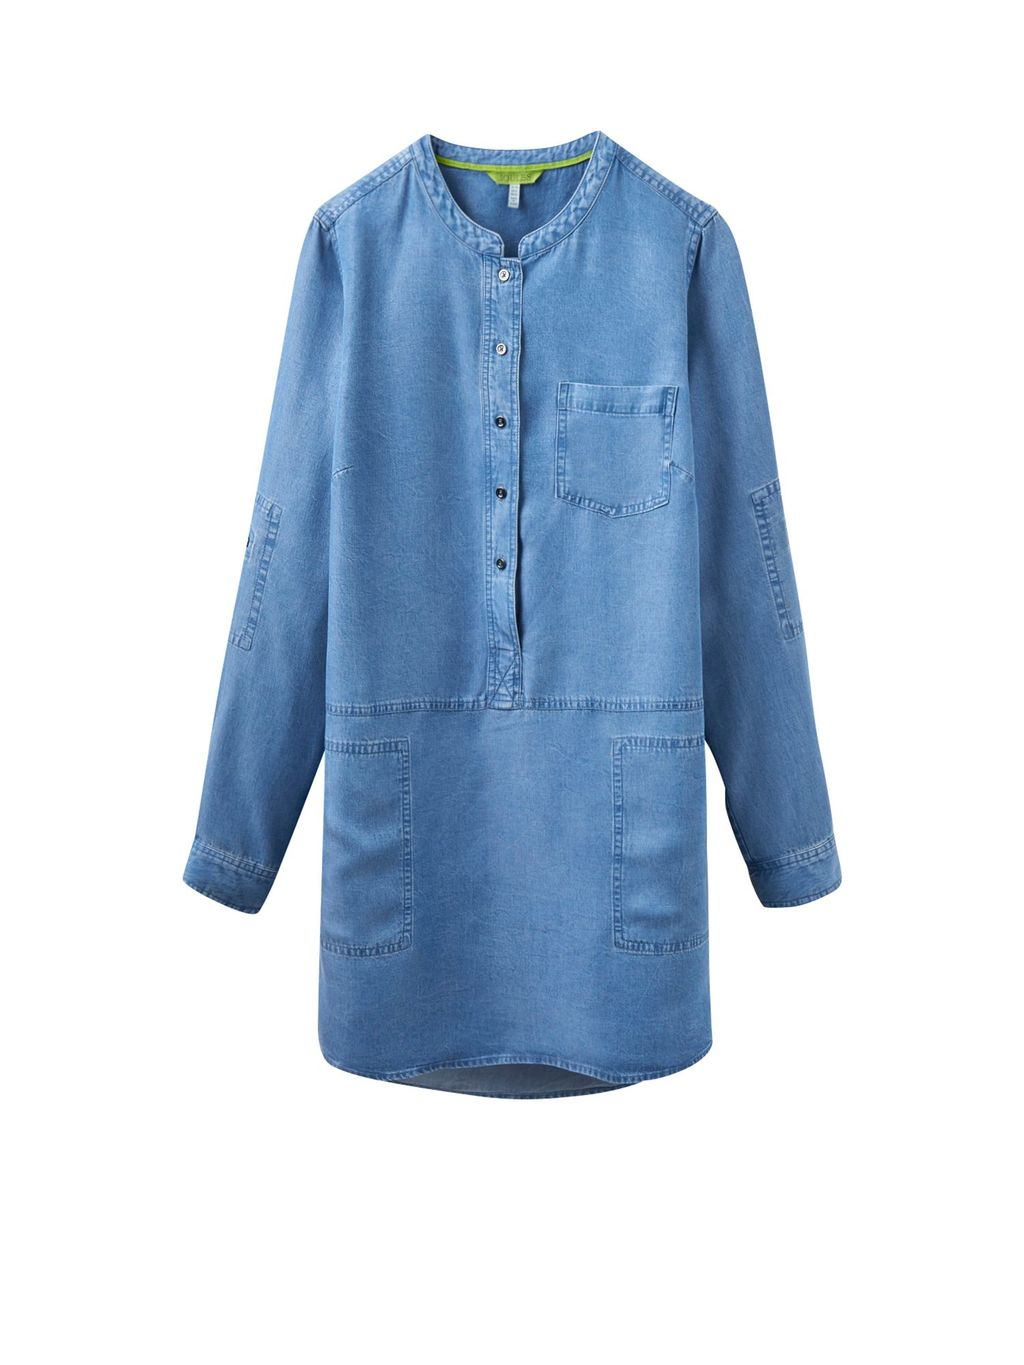 Woven Tunic Shirt, Blue - pattern: plain; style: shirt; predominant colour: denim; occasions: casual; neckline: collarstand; fibres: cotton - 100%; fit: loose; length: mid thigh; sleeve length: long sleeve; sleeve style: standard; texture group: denim; pattern type: fabric; wardrobe: basic; season: a/w 2016